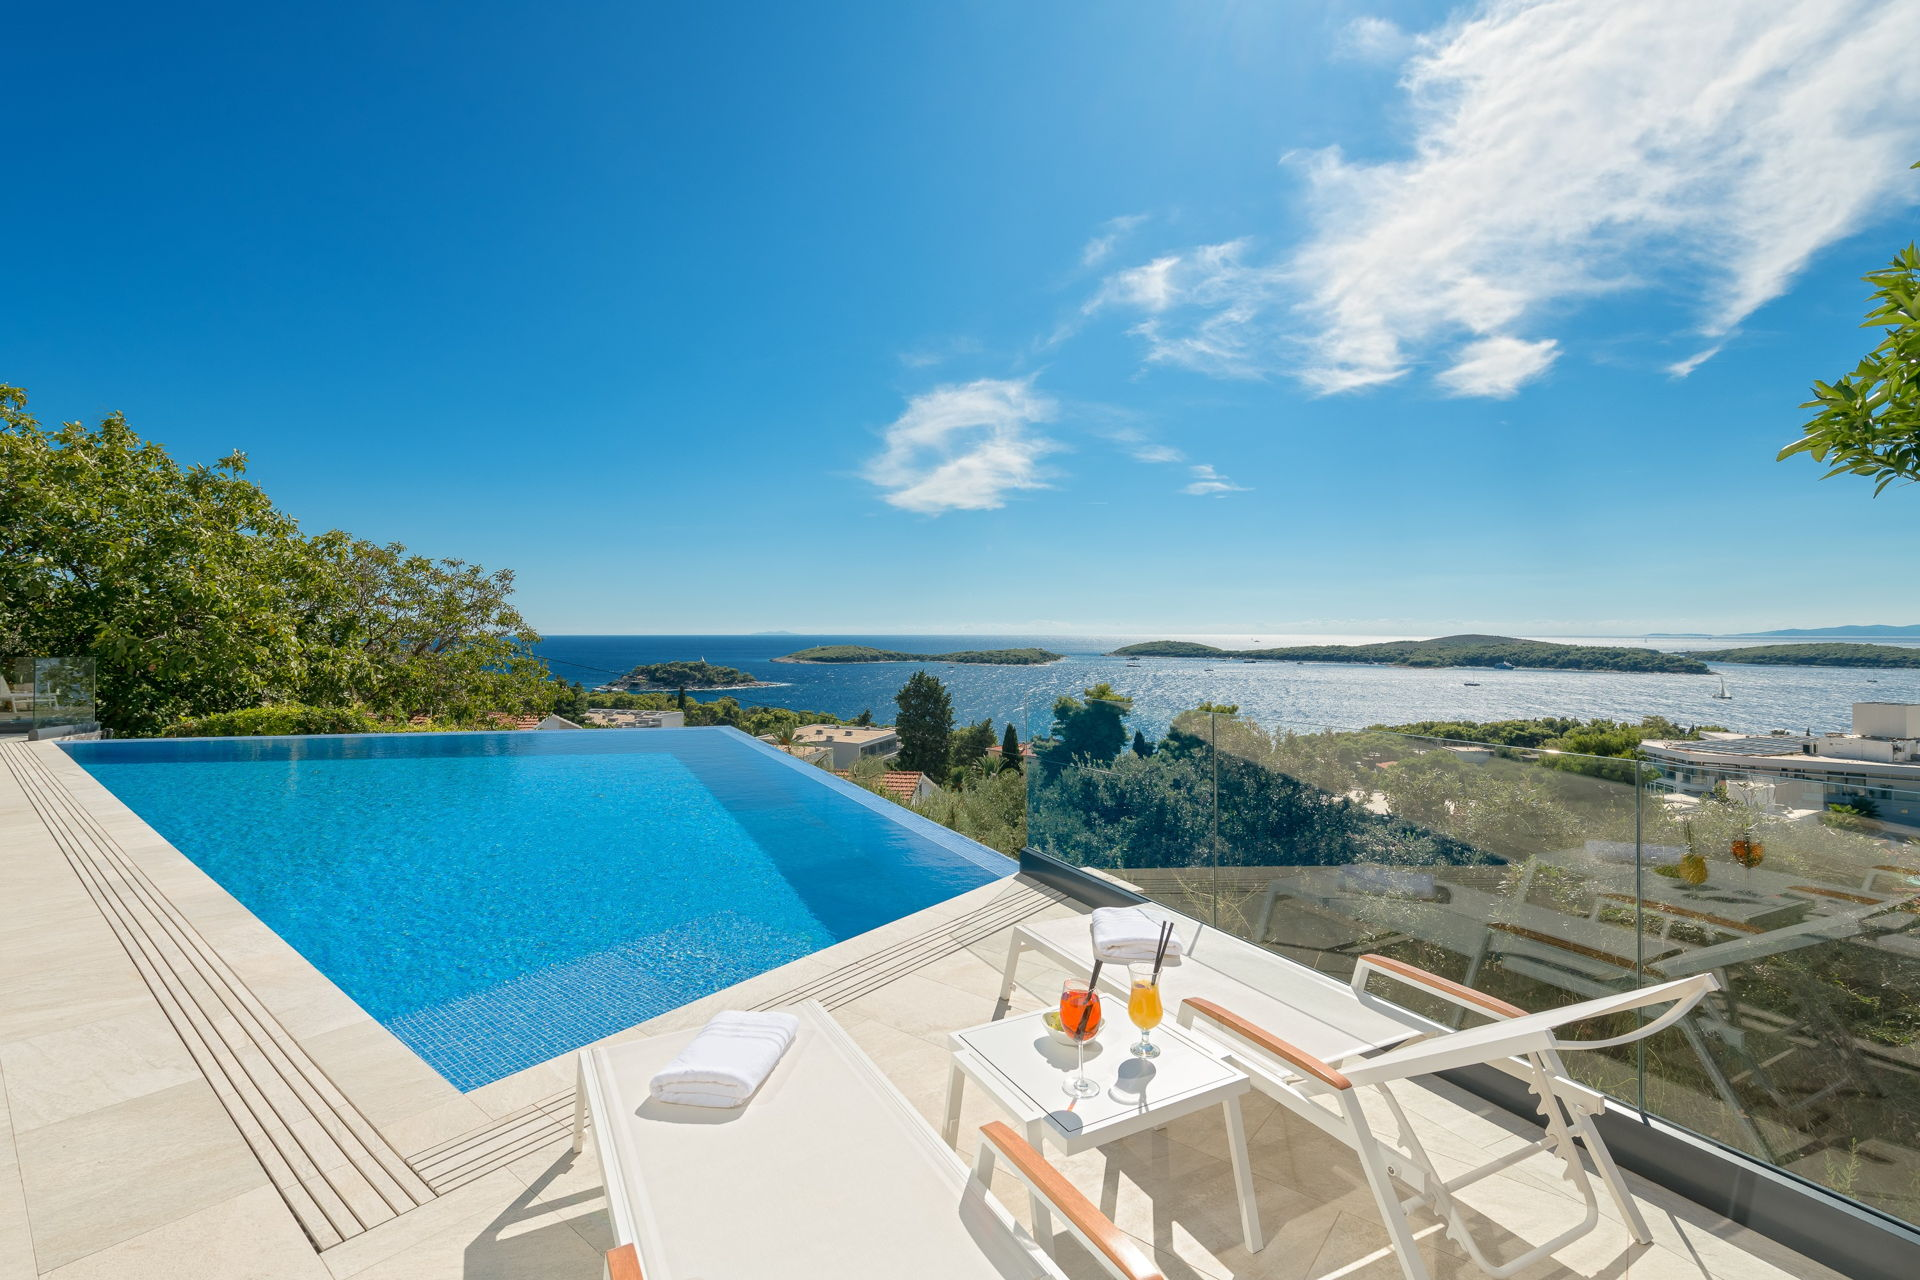 Side view of the Infinity Pool Princess of Hvar